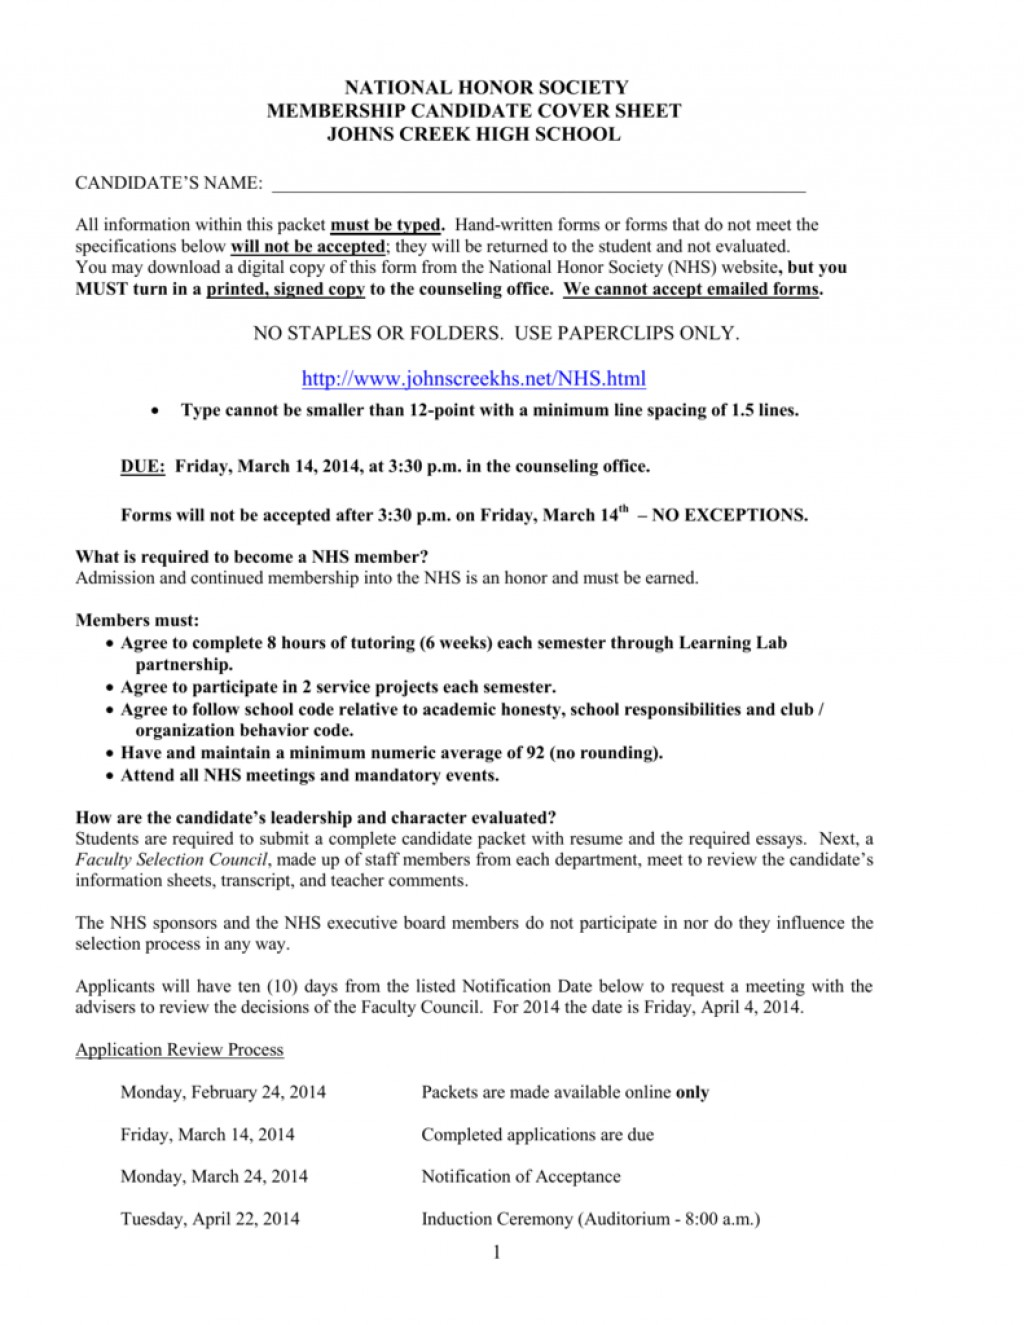 025 008823851 1 National Honors Society Essay Unique Conclusion Honor Samples Character Large